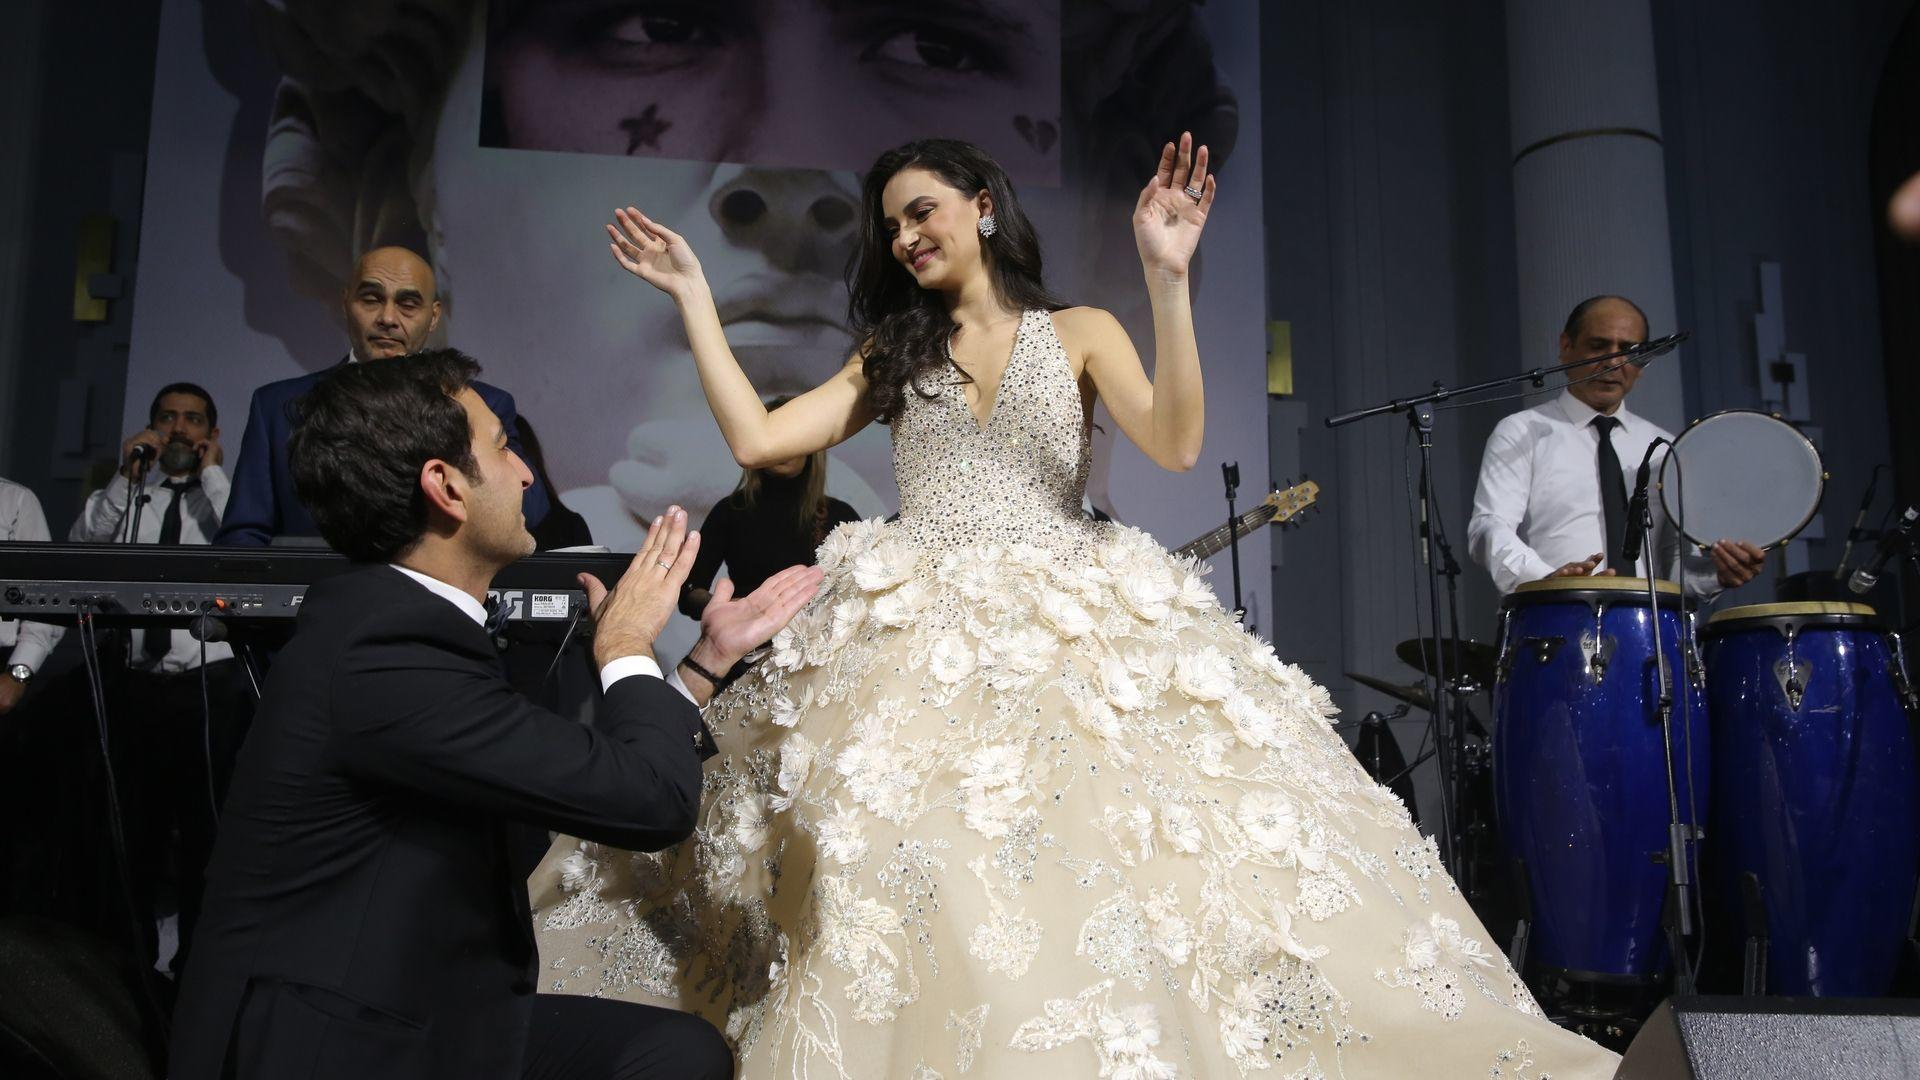 The 10 Best Arabic Songs for Your Wedding